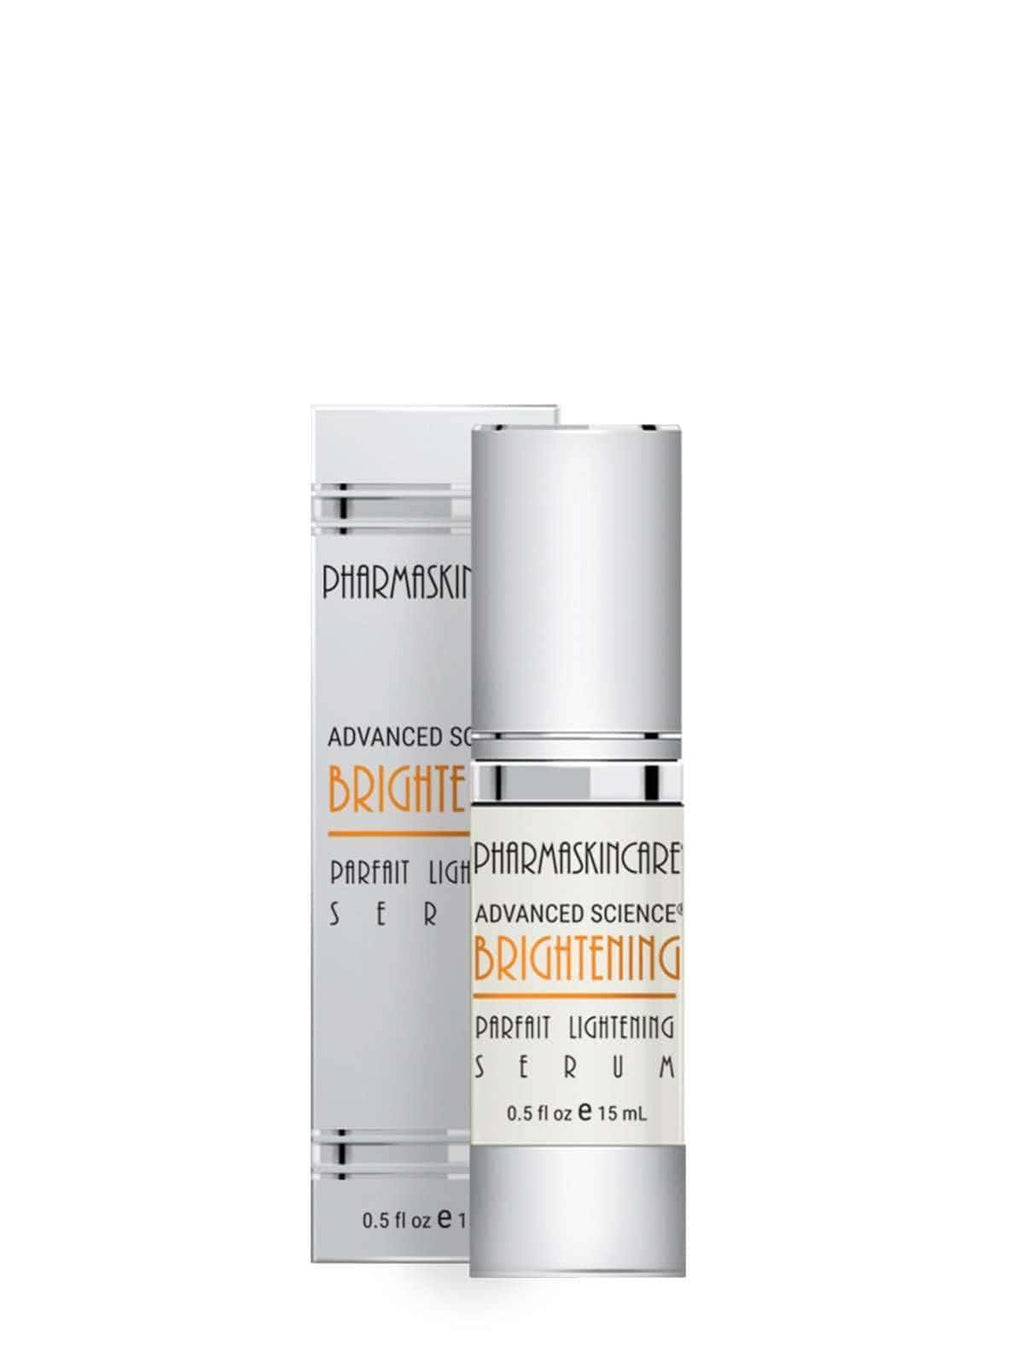 Brightening Parfait Lightening Serum - Pharmaskincare